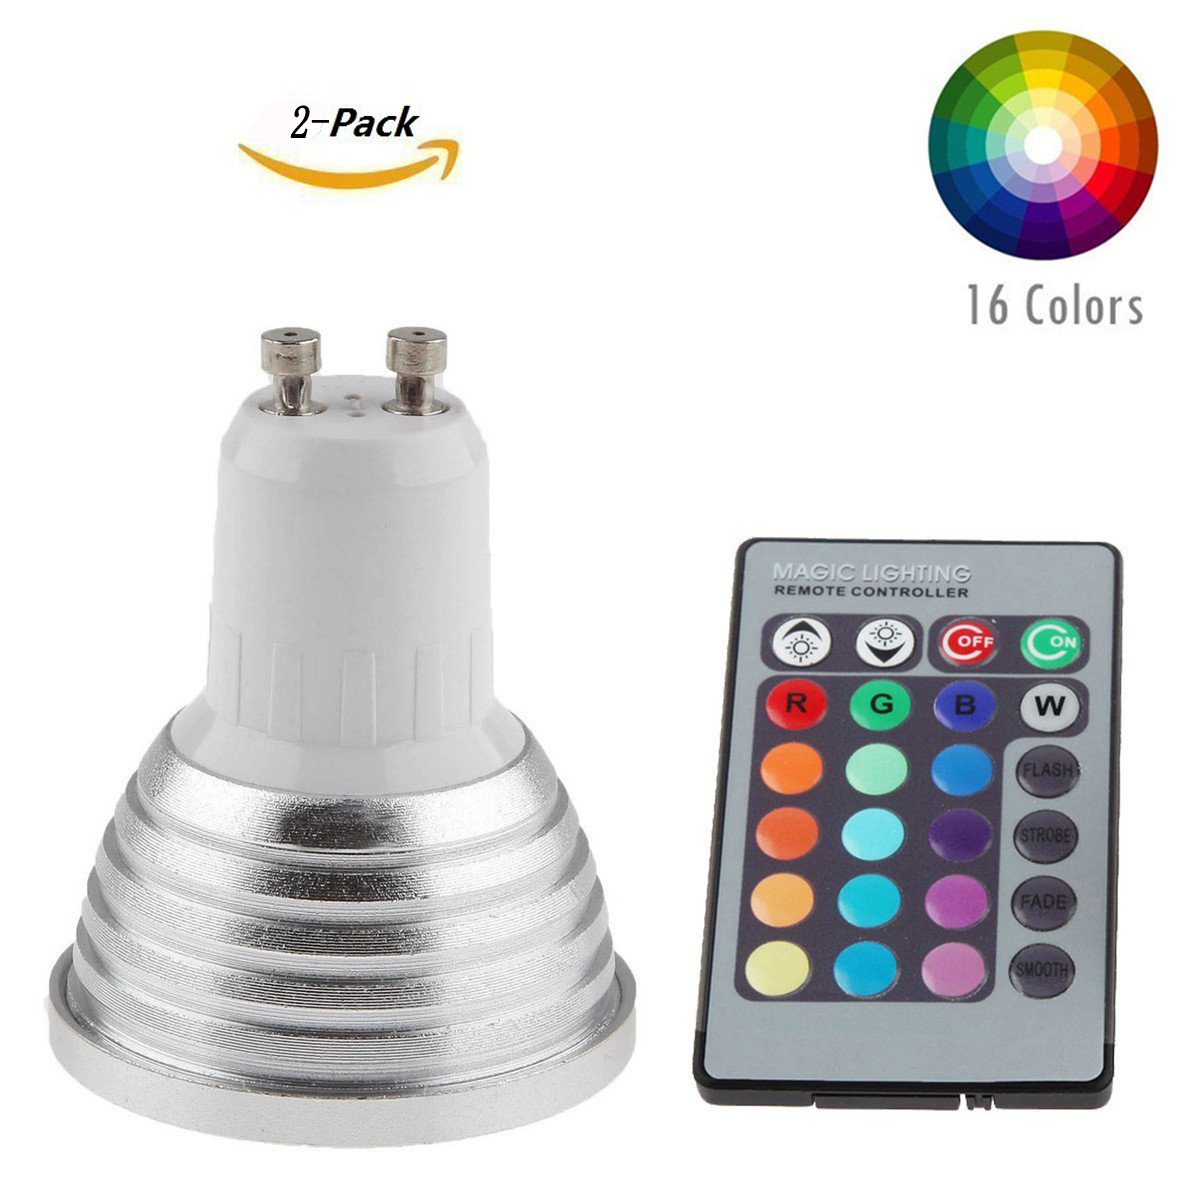 Zimtown 2-Pack Dimmable GU10 LED Light Bulbs,5W 85~265V RGB Color Changing Spotlight with IR Remote Control Mood Ambiance Lighting for Home Decoration, Bar, Party